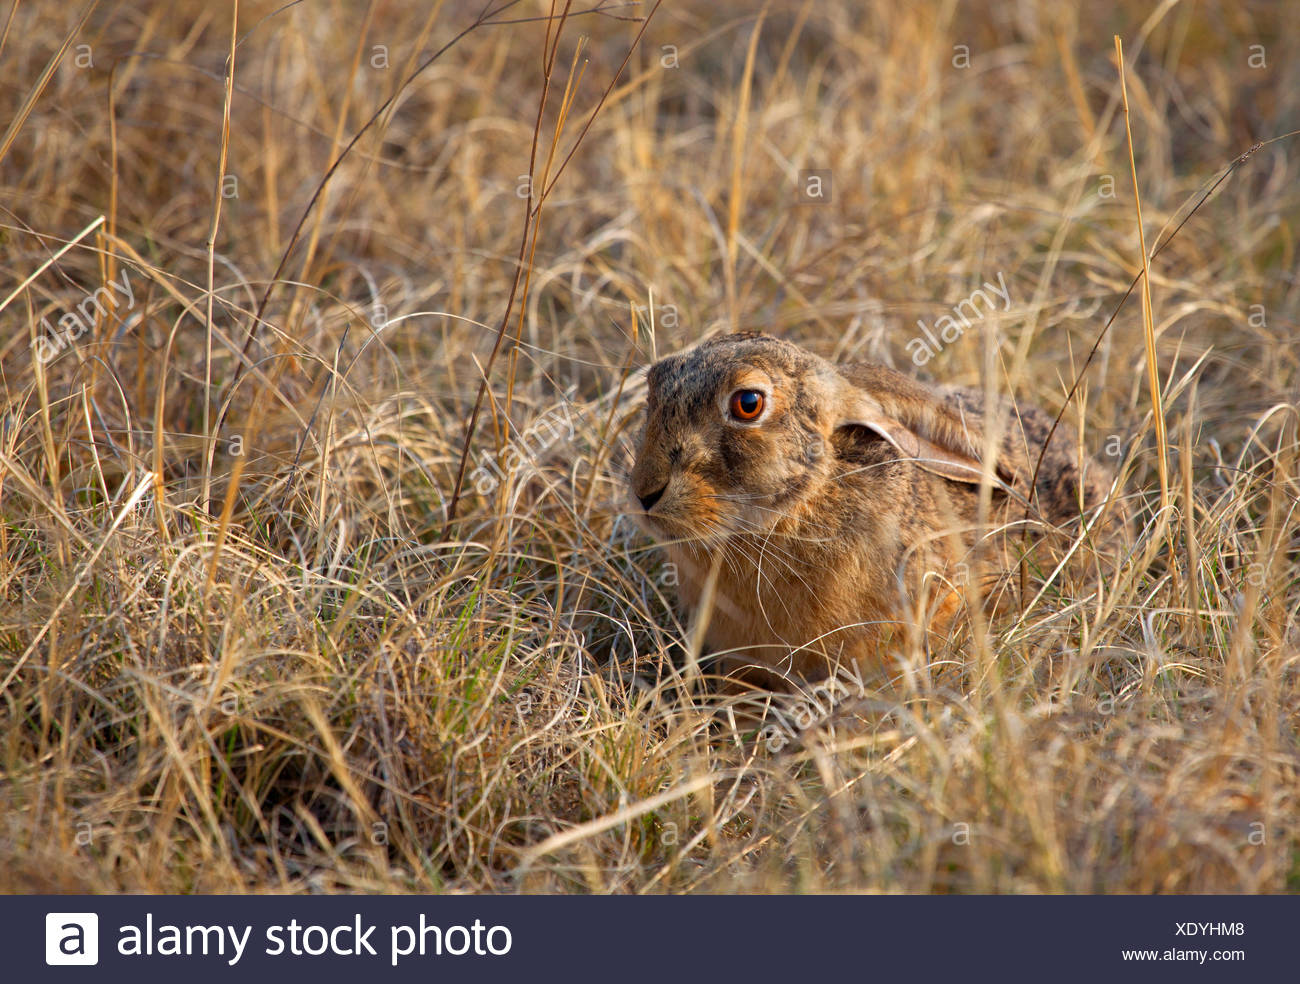 Cape hare, brown hare (Lepus capensis), well camouflaged in dry grass, South Africa - Stock Image